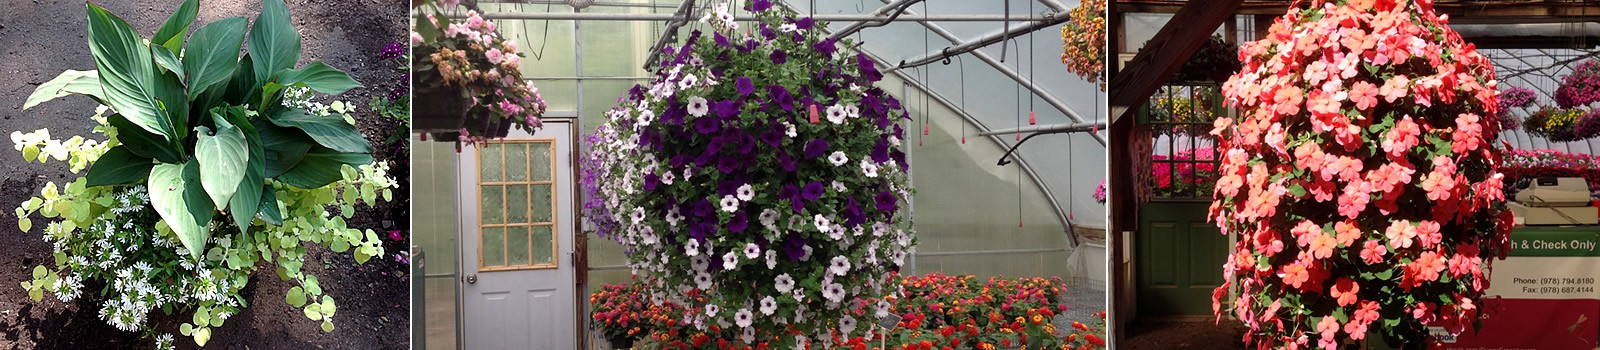 Duerrs Greenhouses - Merrimack Valley nusery serving Southern New Hampshire and Massachusetts